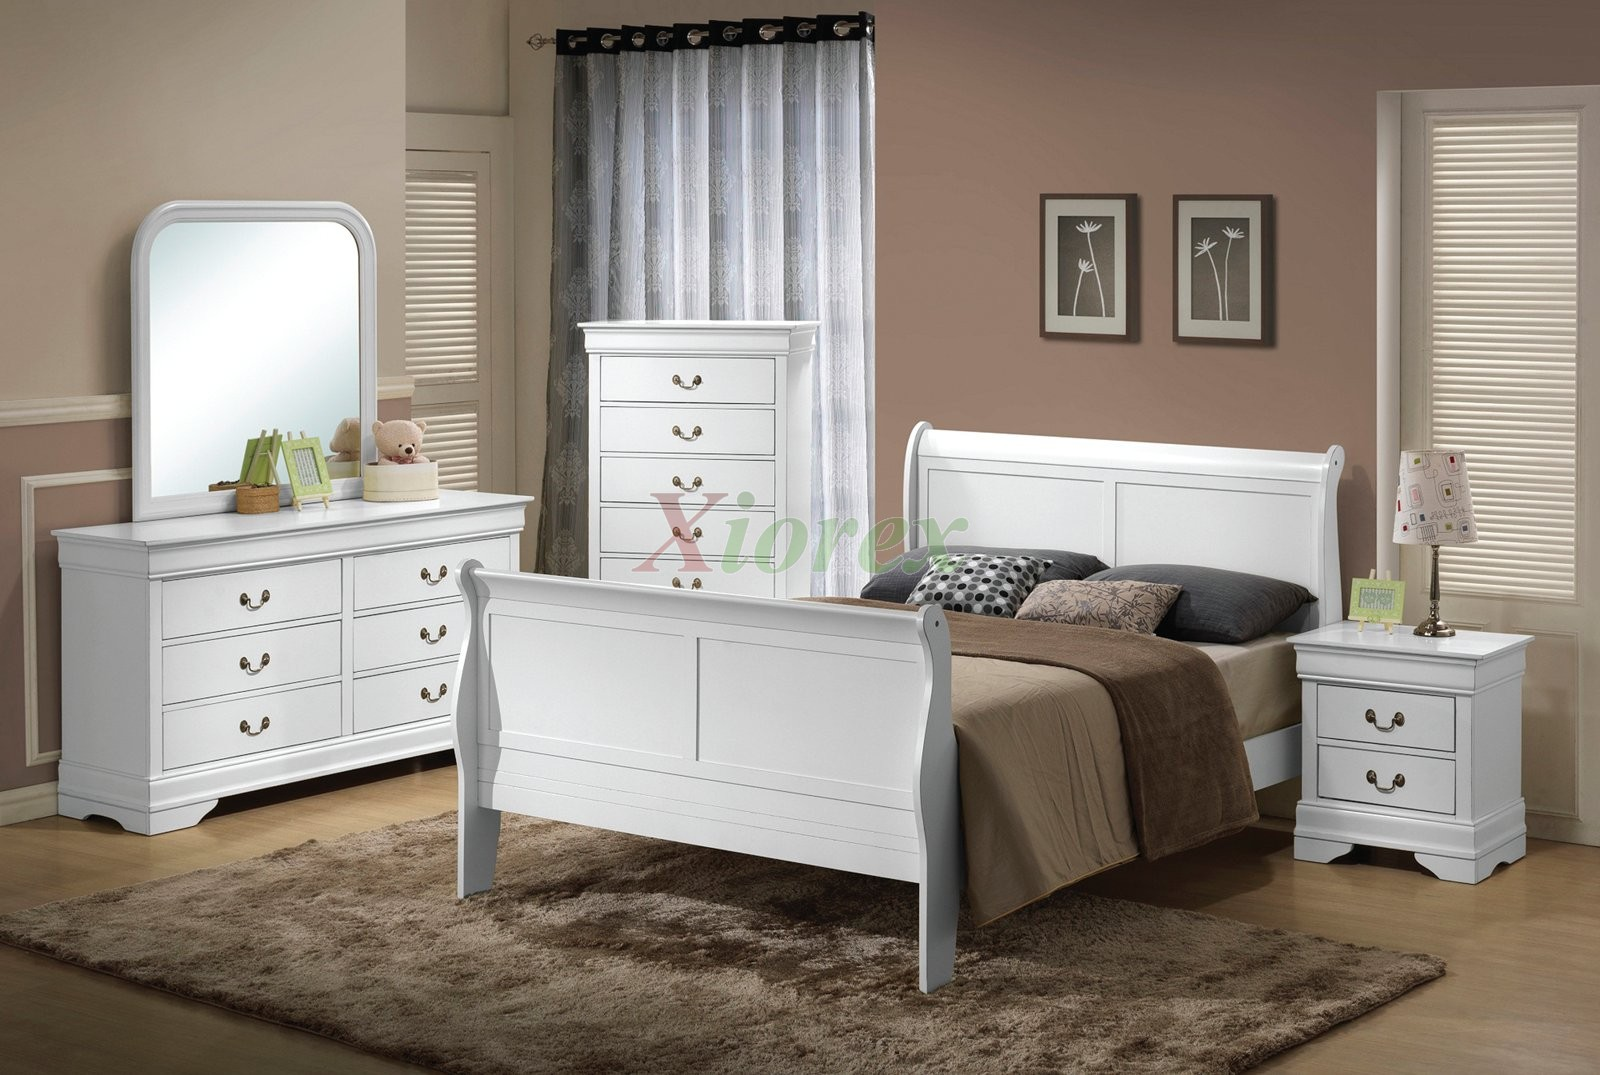 Semi gloss White Bedroom Suite 170 w Sleigh Like Queen and King Beds. Semi gloss Sleigh Like Bedroom Furniture Set 170 in Cherry Black White